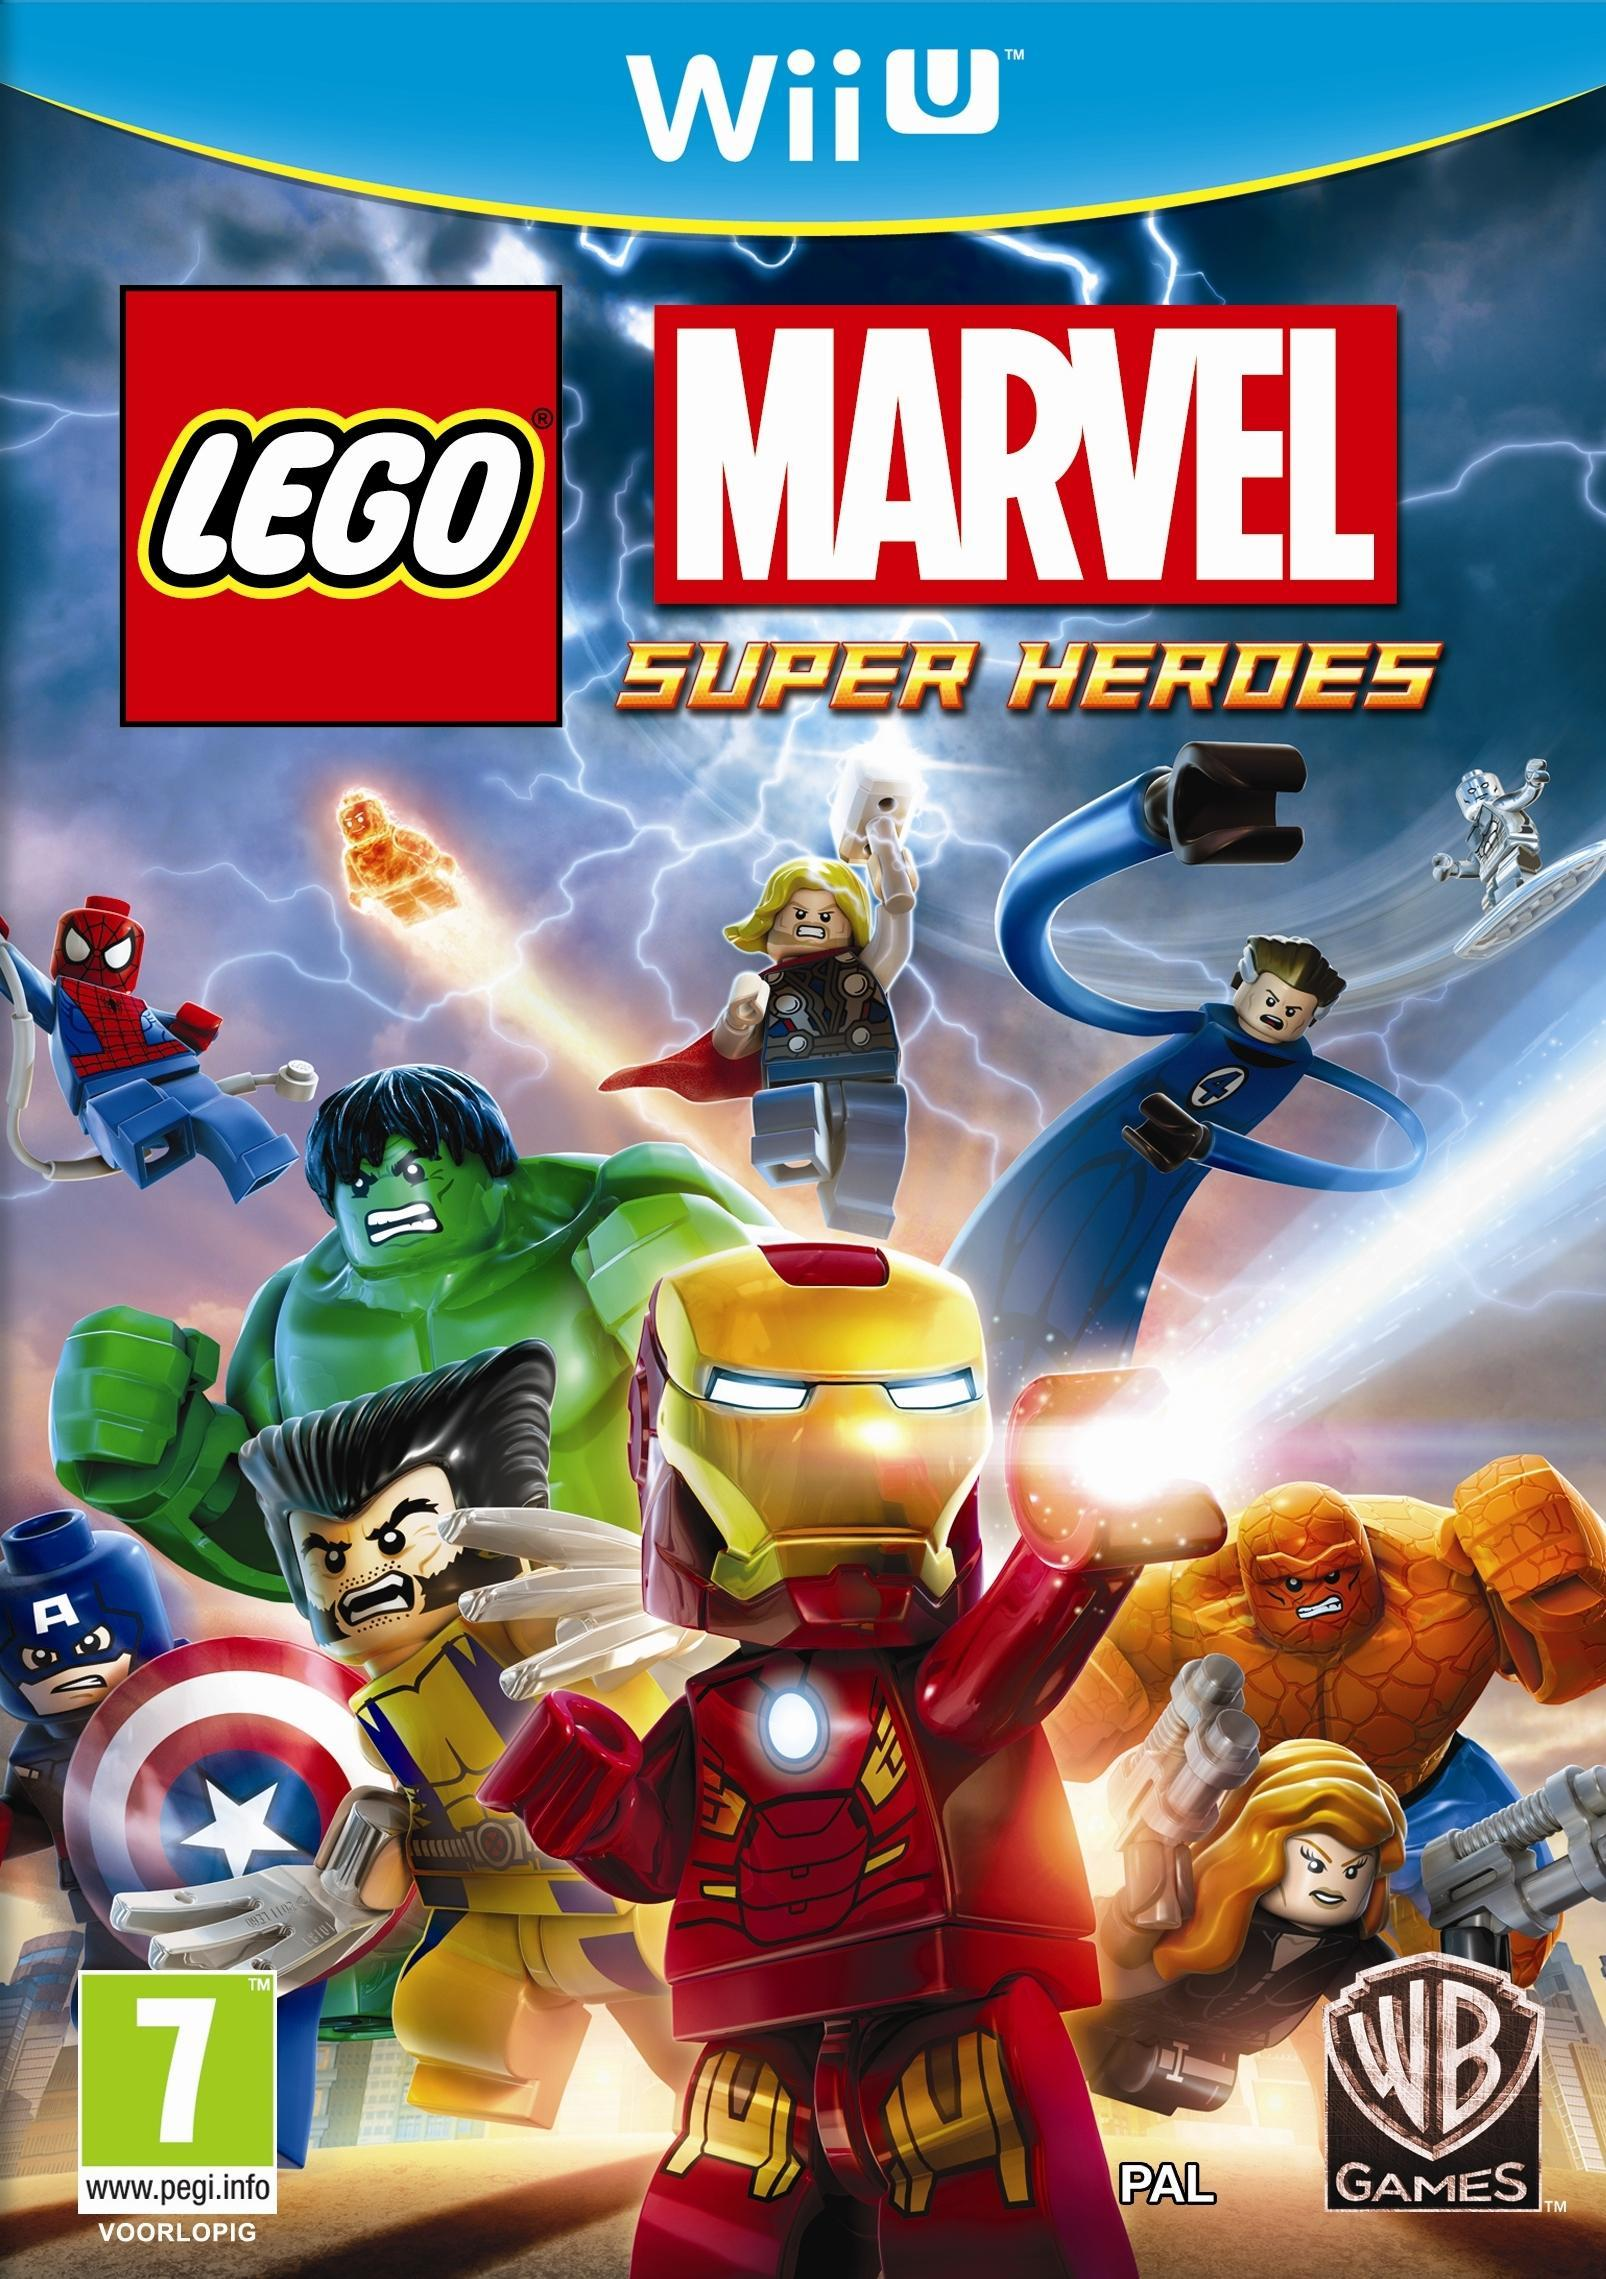 Warner Bros LEGO Marvel Super Heroes Wii U (1000401083) thumbnail